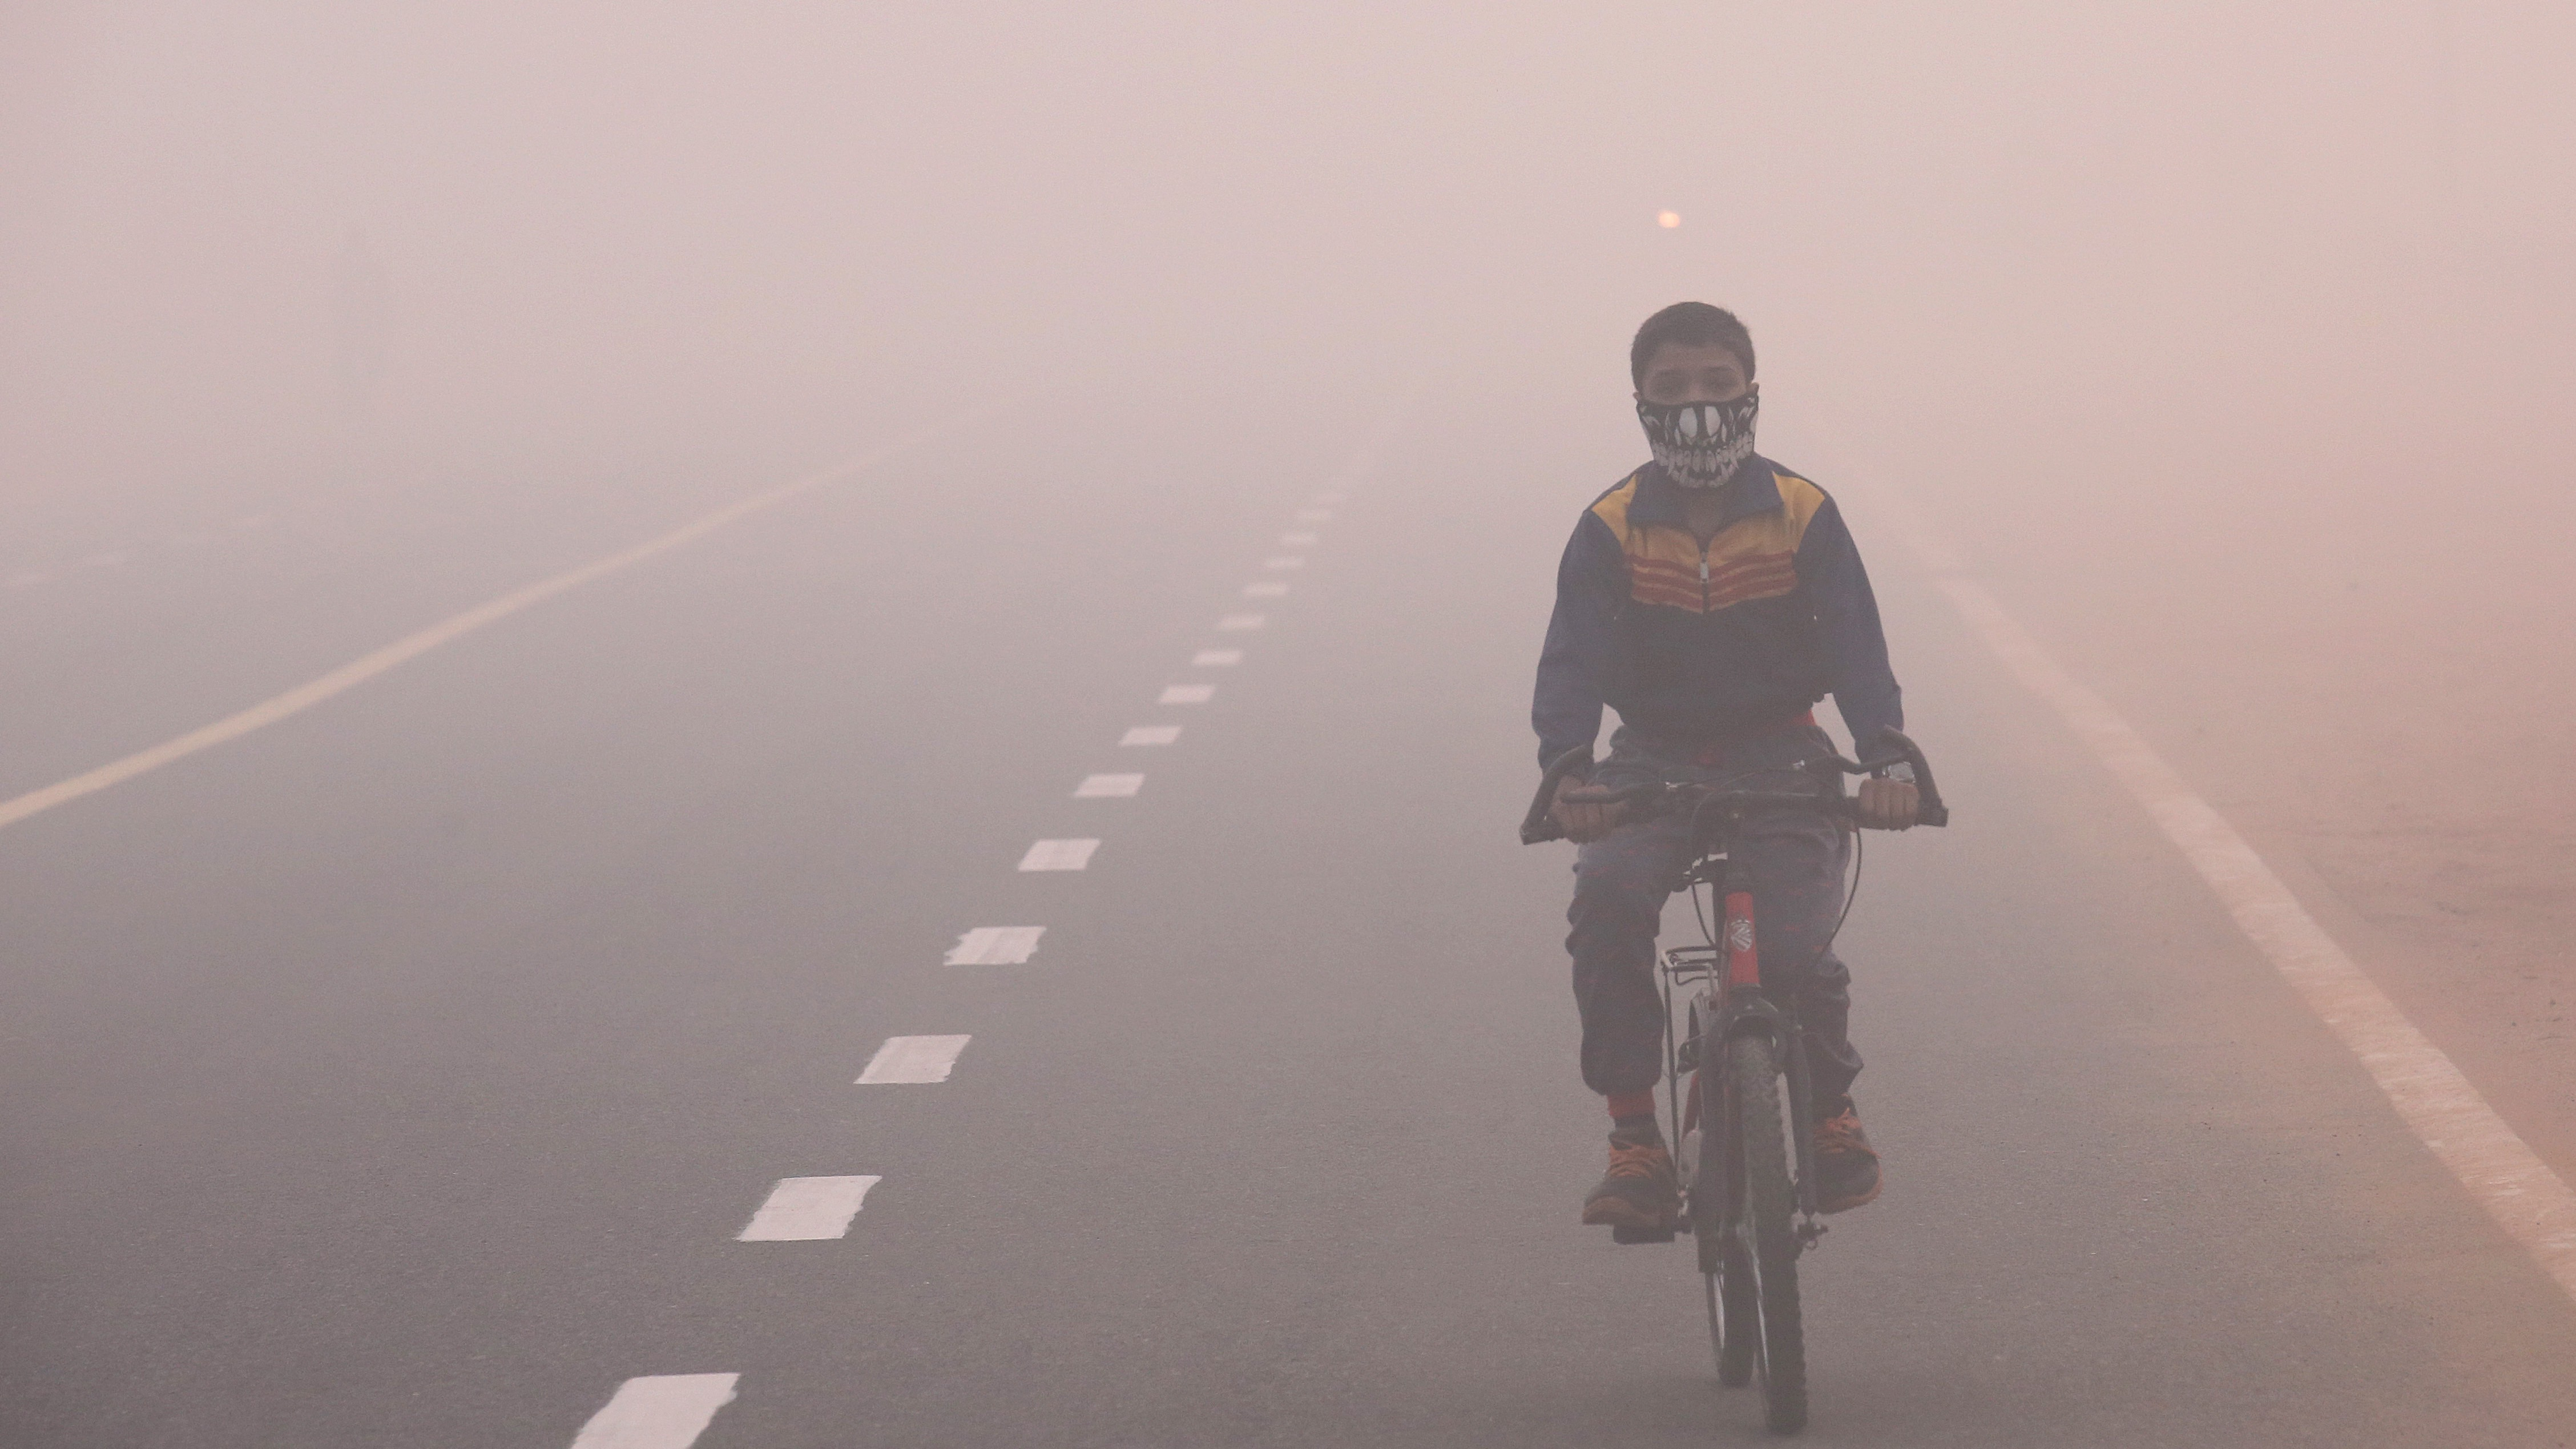 An Indian child wearing a face mask cycles in smog, one day after the Diwali festival, in New Delhi, India, 31 October 2016. According to a news report, hundreds of people faced breathing problem and poor visibility due to heavy smog after fireworks set off during the Diwali festival in Delhi have worsened the pollution problem.